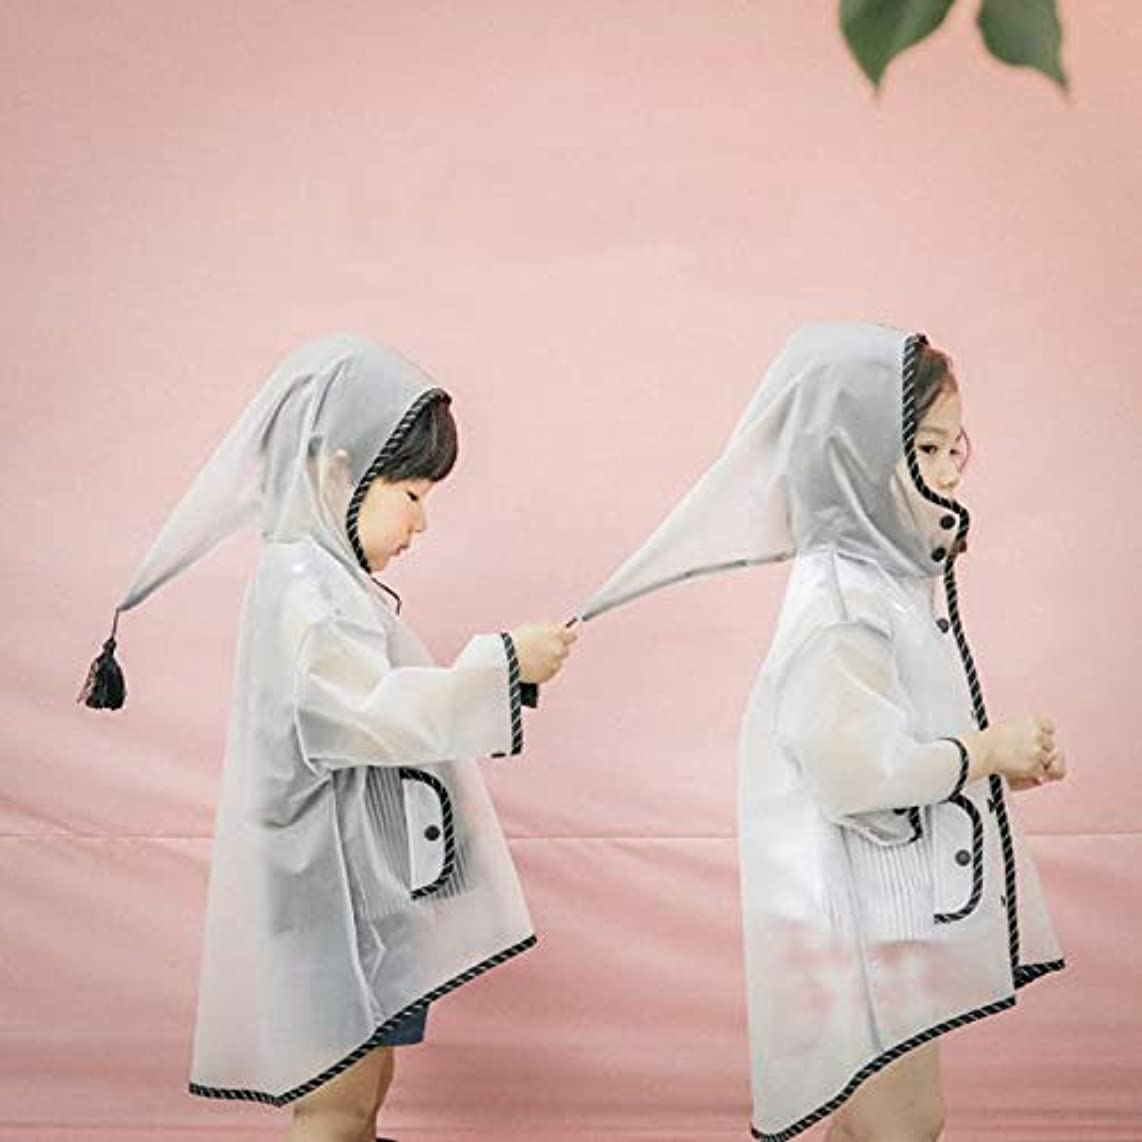 Overcoat White - Design Boys Girls Raincoats Witch Hat Transparent Rain Coat White Waterproof Coats Years Kids - Vitamins Crow Yellow Sleeping Tree Notebook Village Non-slip Coats Fish Women Ra